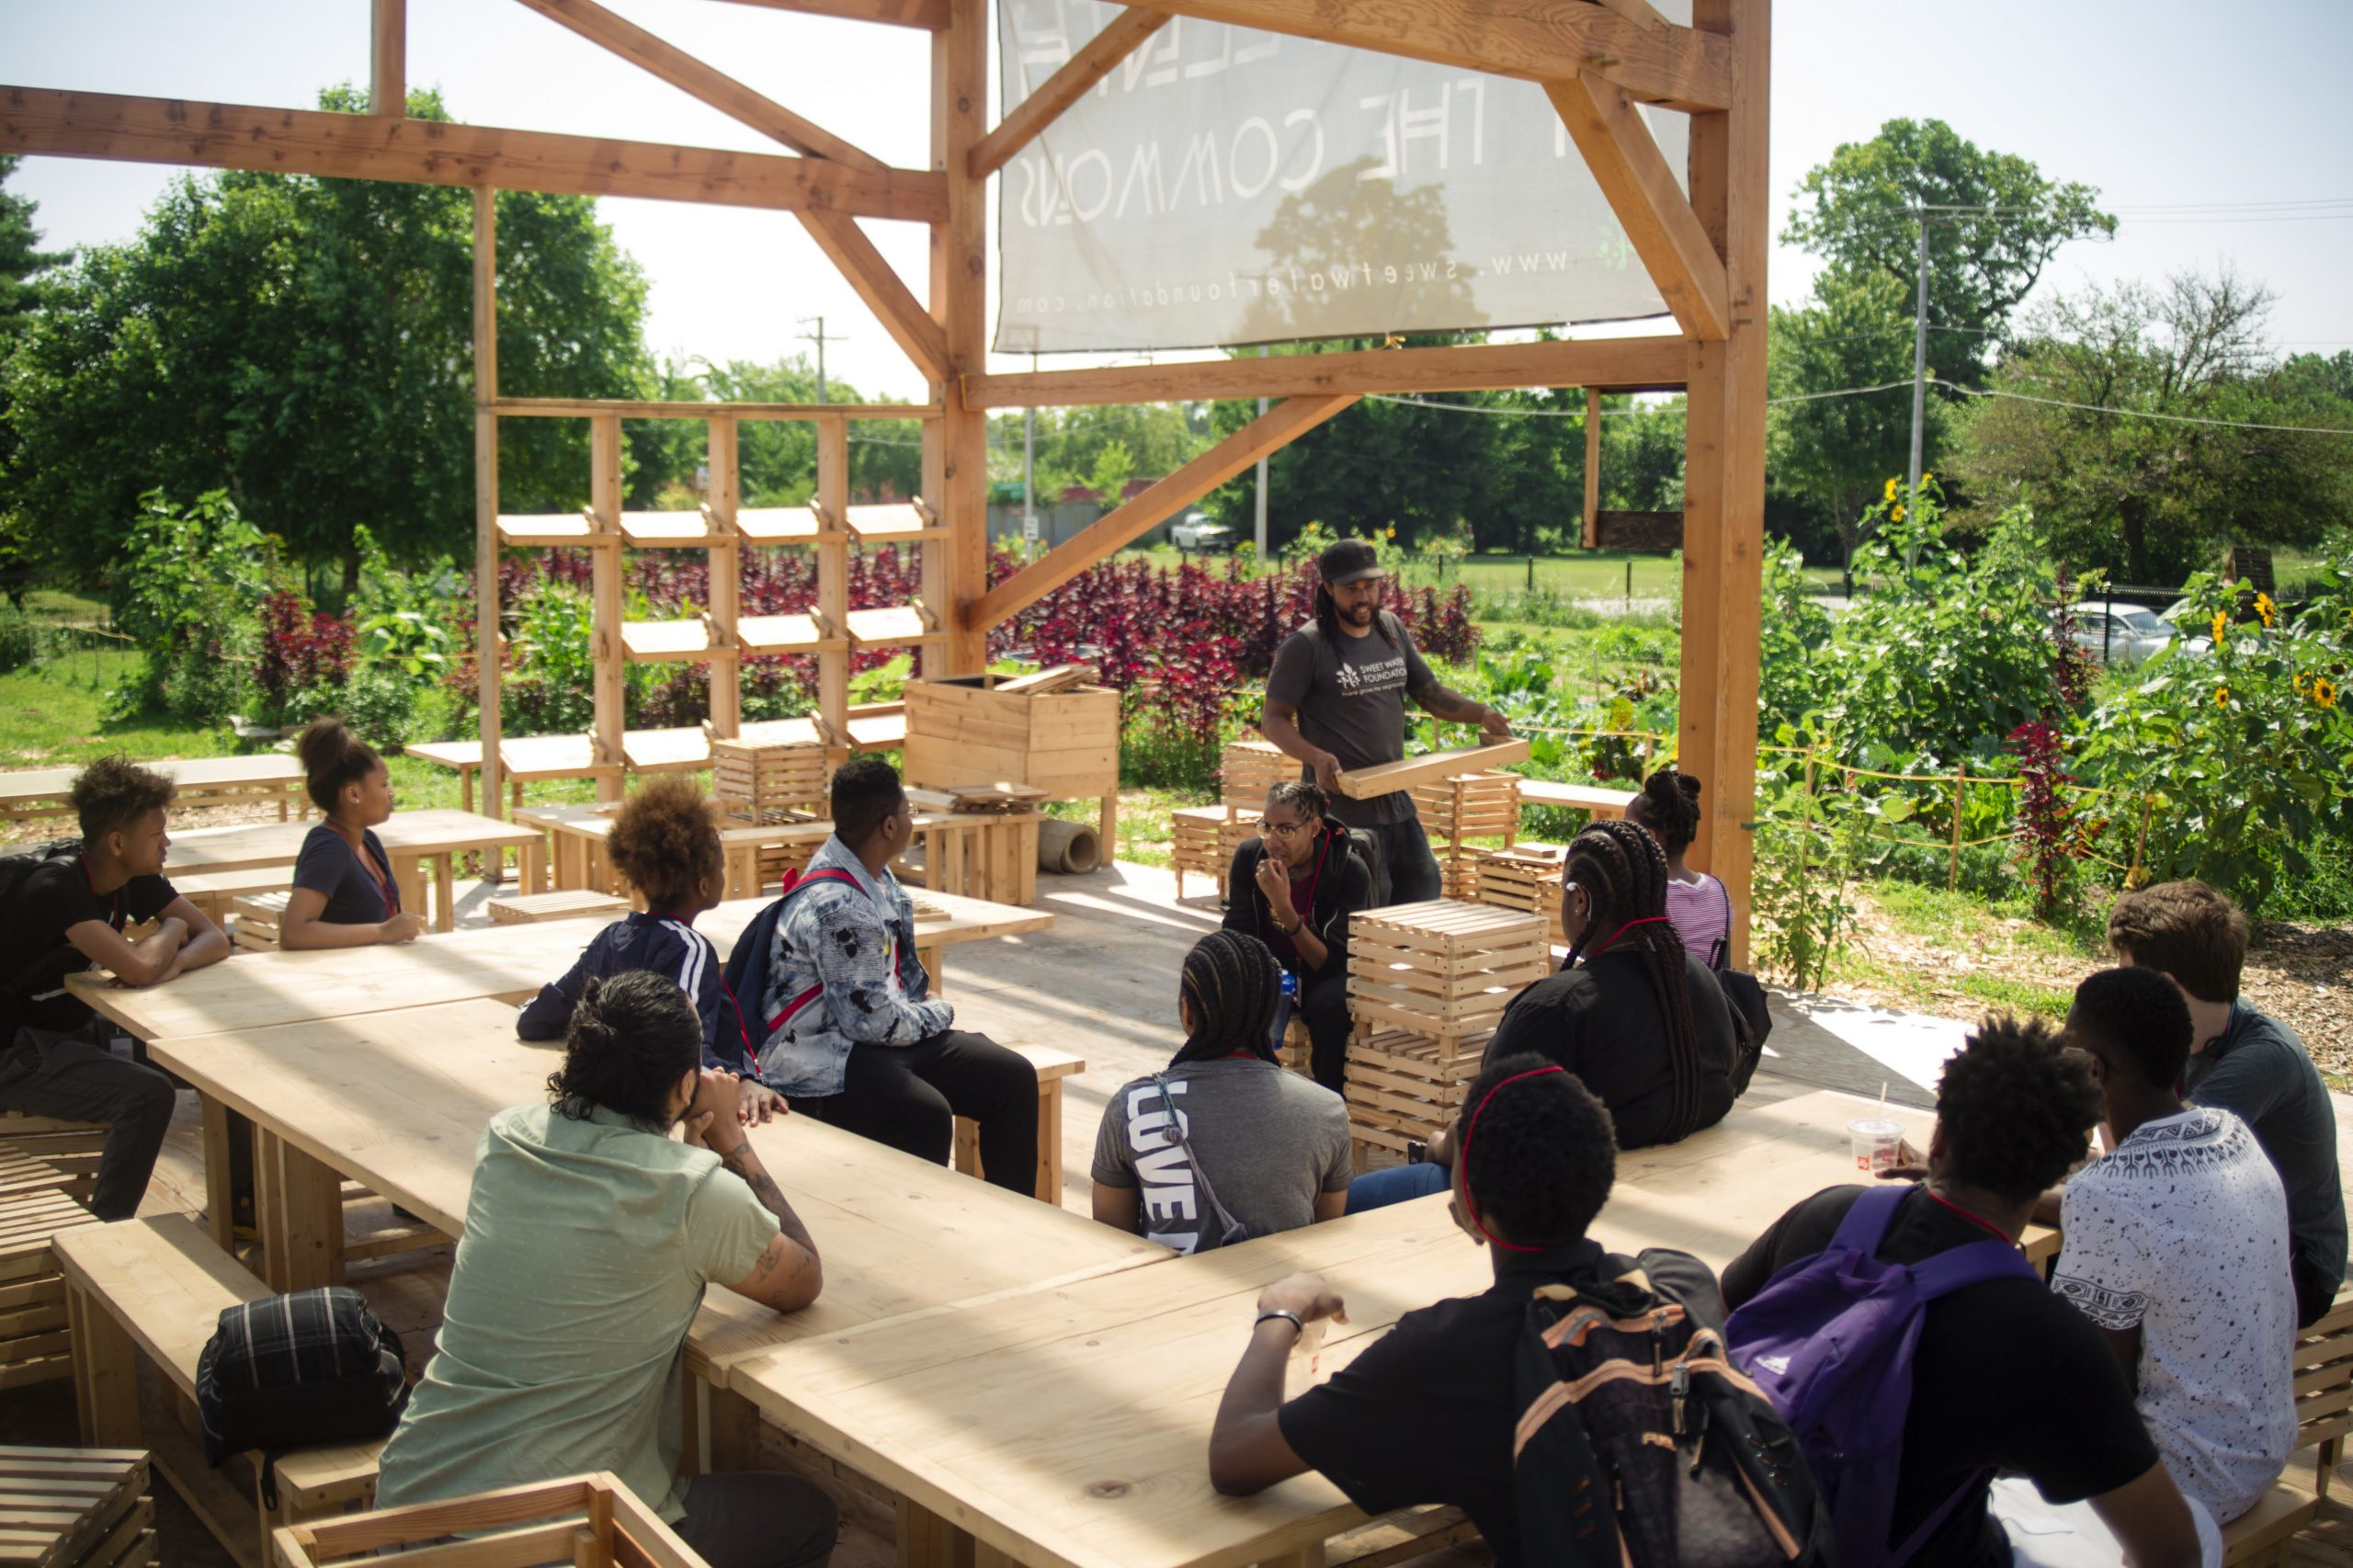 Youth gather in an open-air barn surrounded by green space